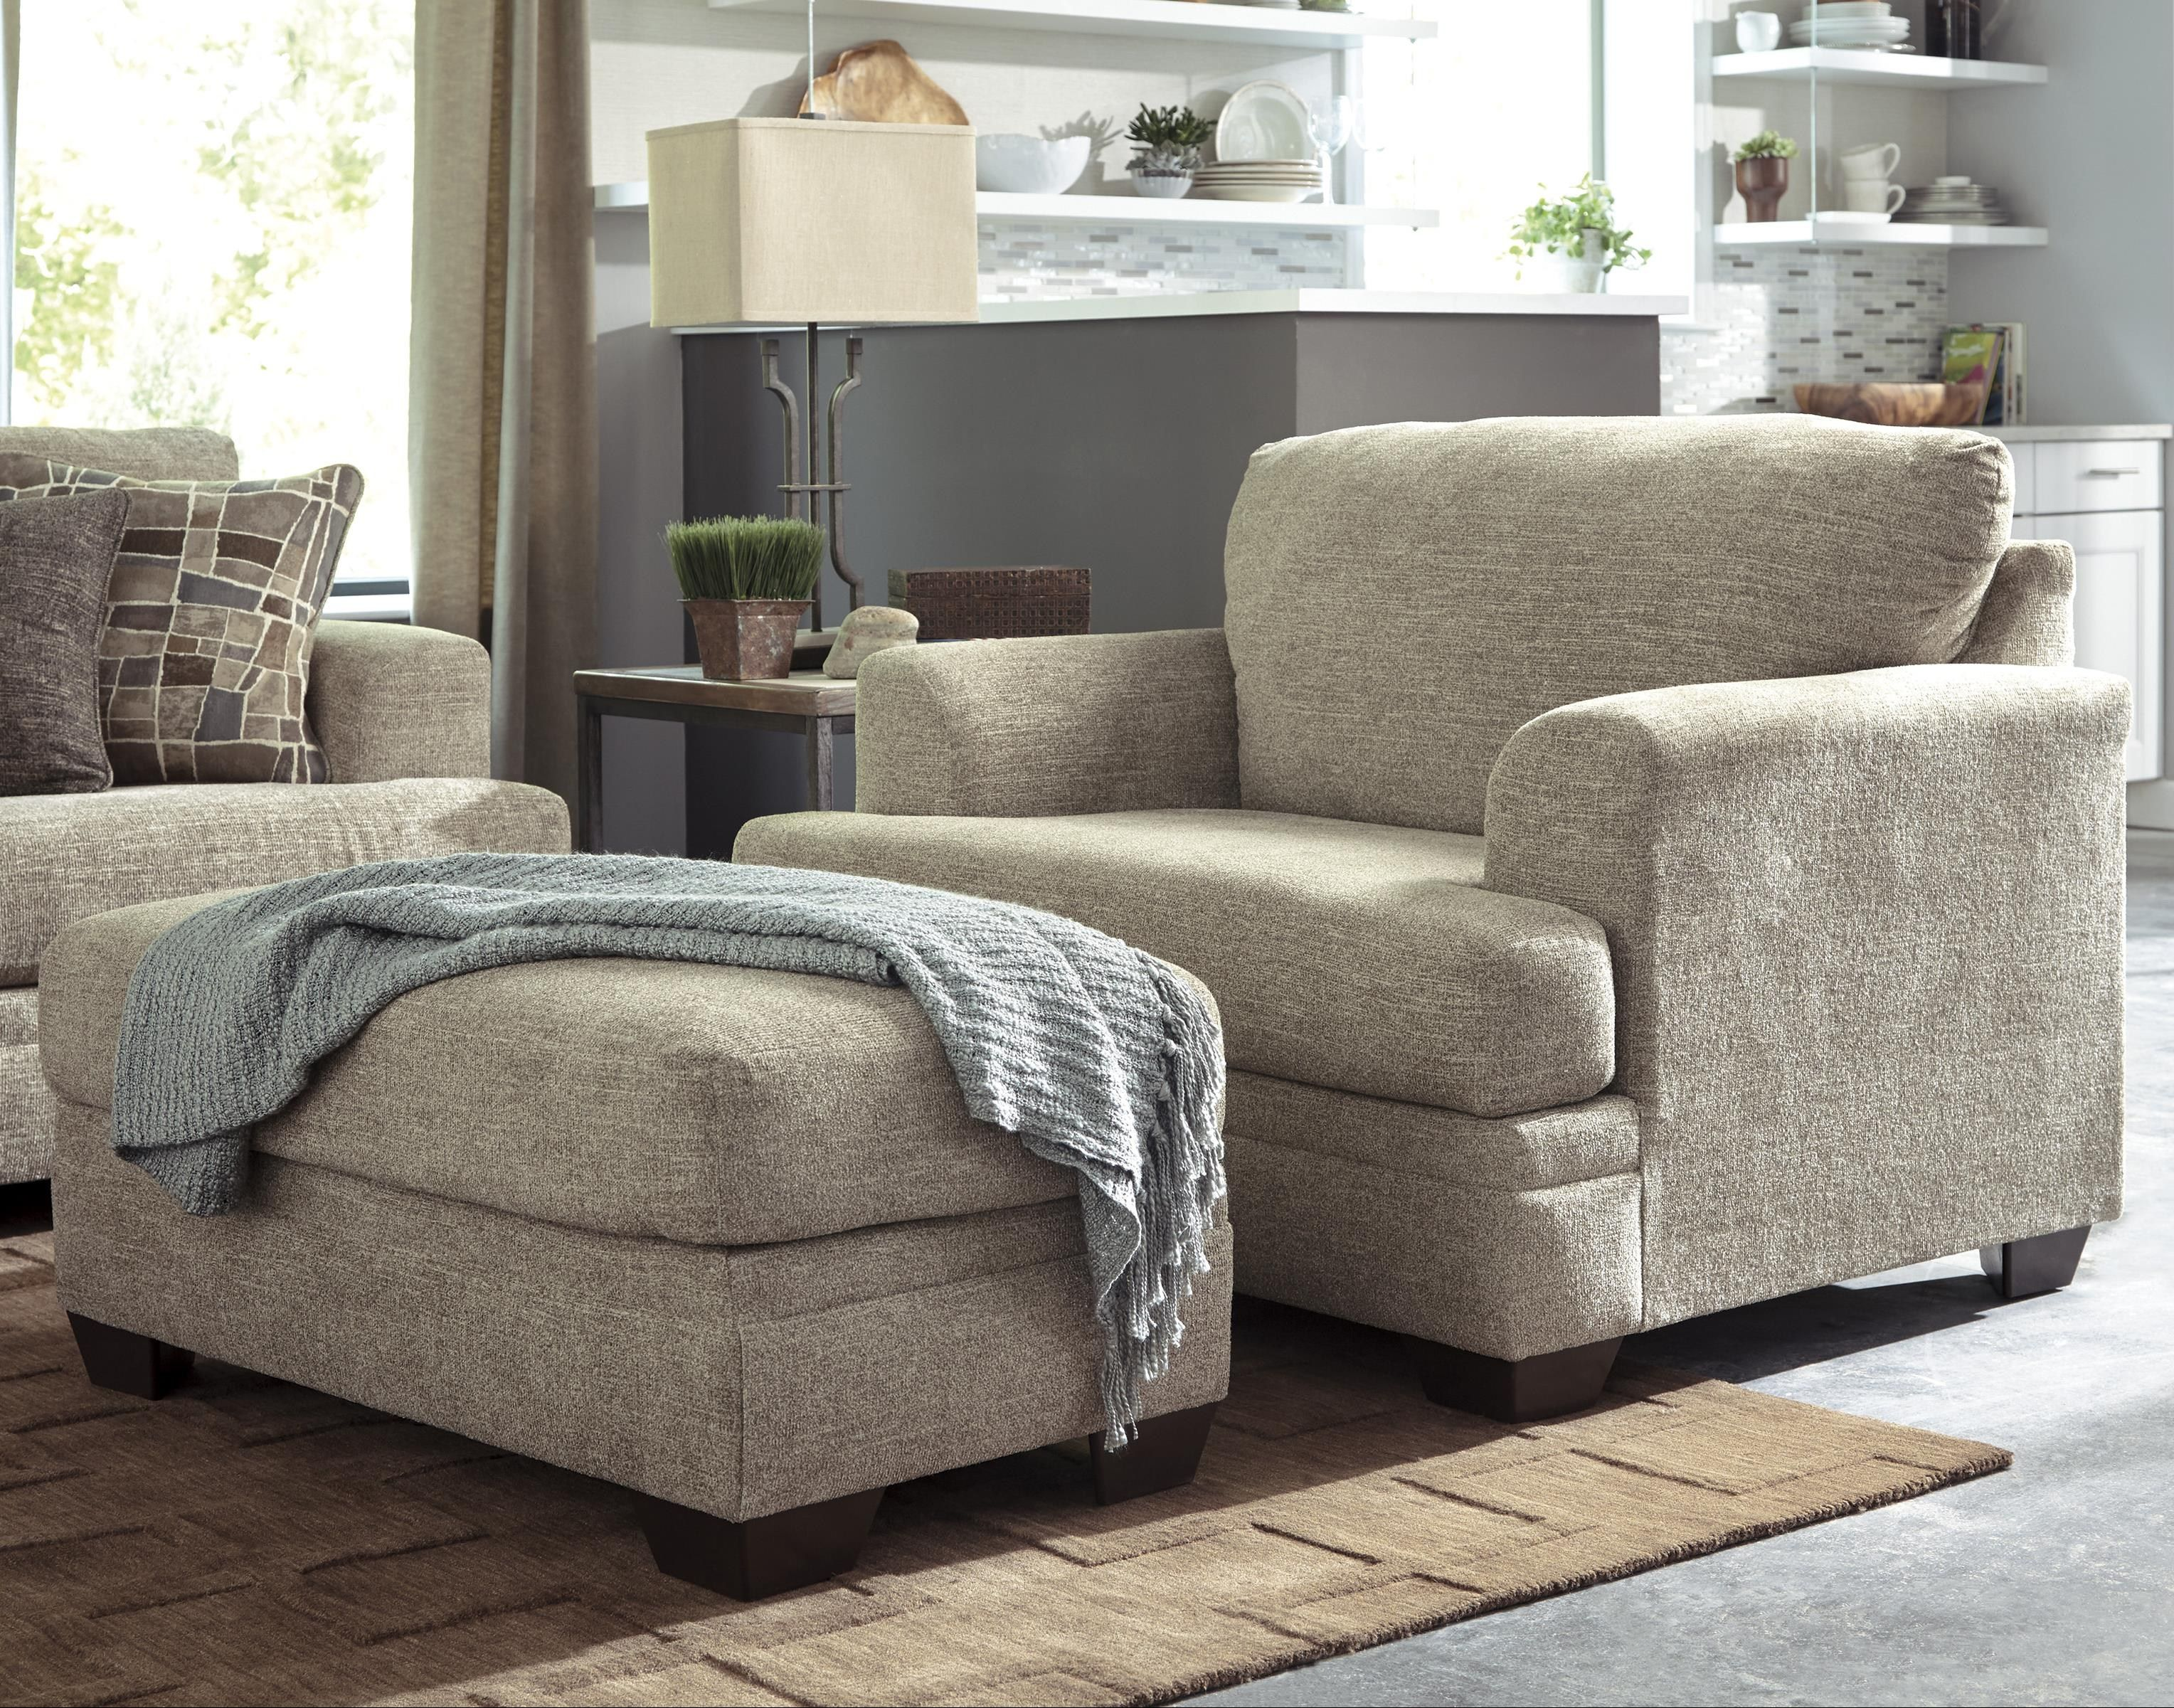 Buy Chair And A Half With Ottoman For Better Comfort At Home Blue Chairs Living Room Oversized Chair And Ottoman Living Room Chairs